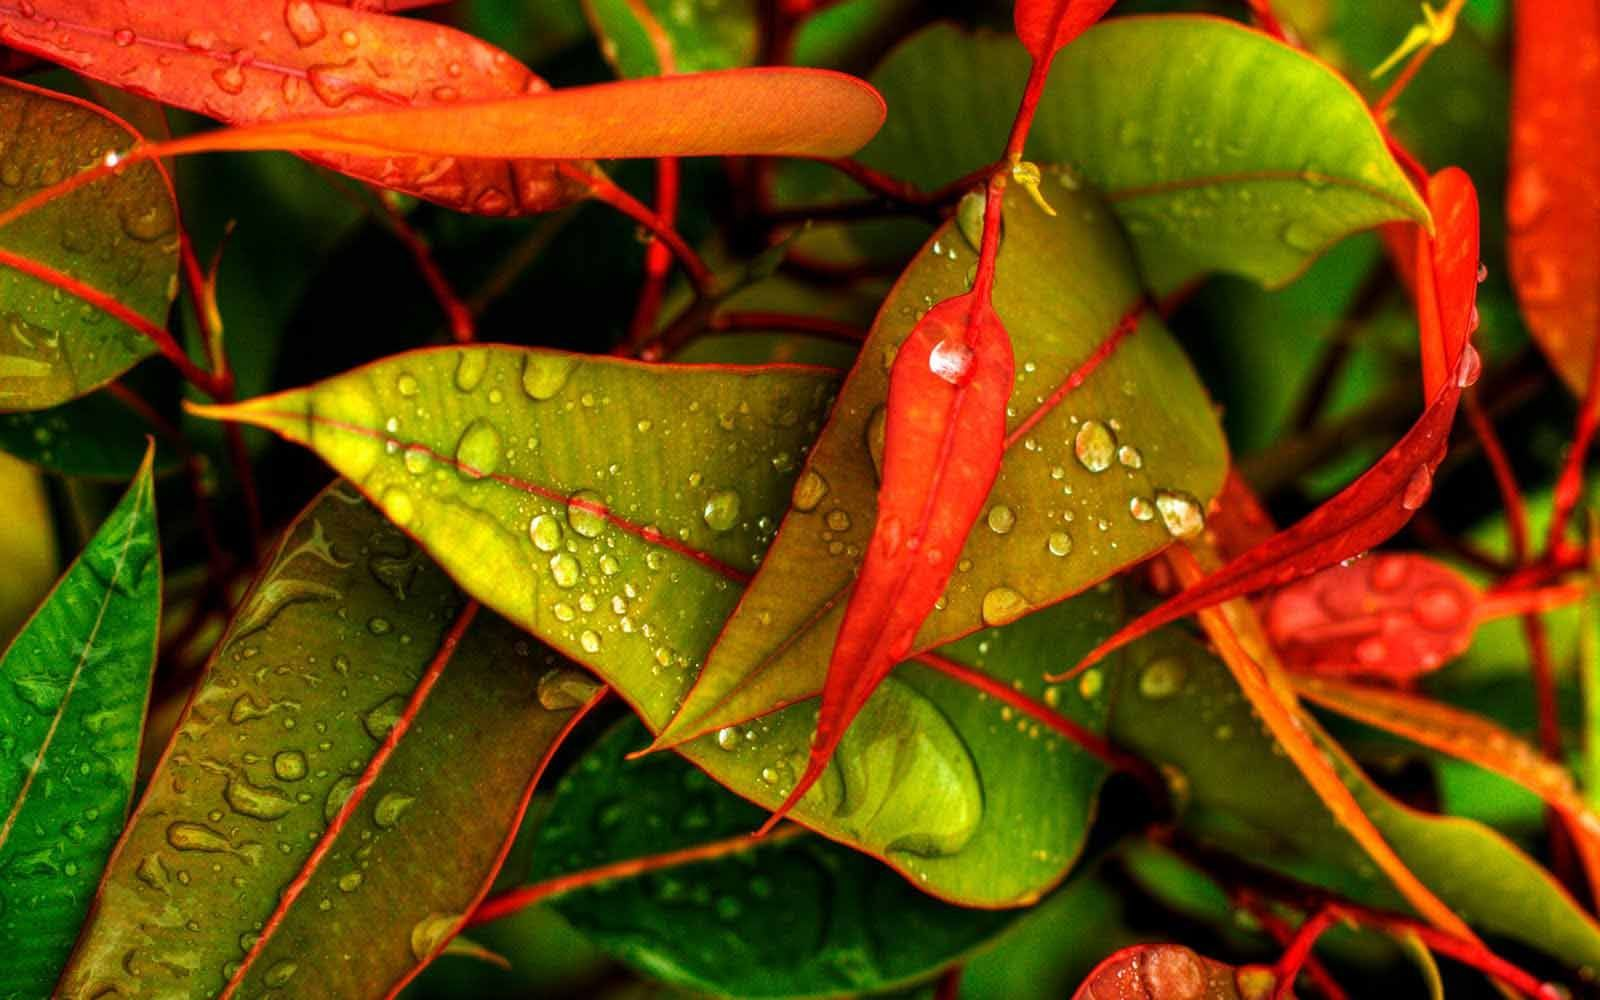 All New Hd Wallpaper High Quality Wallpapers Full Hd Wallpapers Green Leaf Wallpaper Leaf Wallpaper Water Drop On Leaf